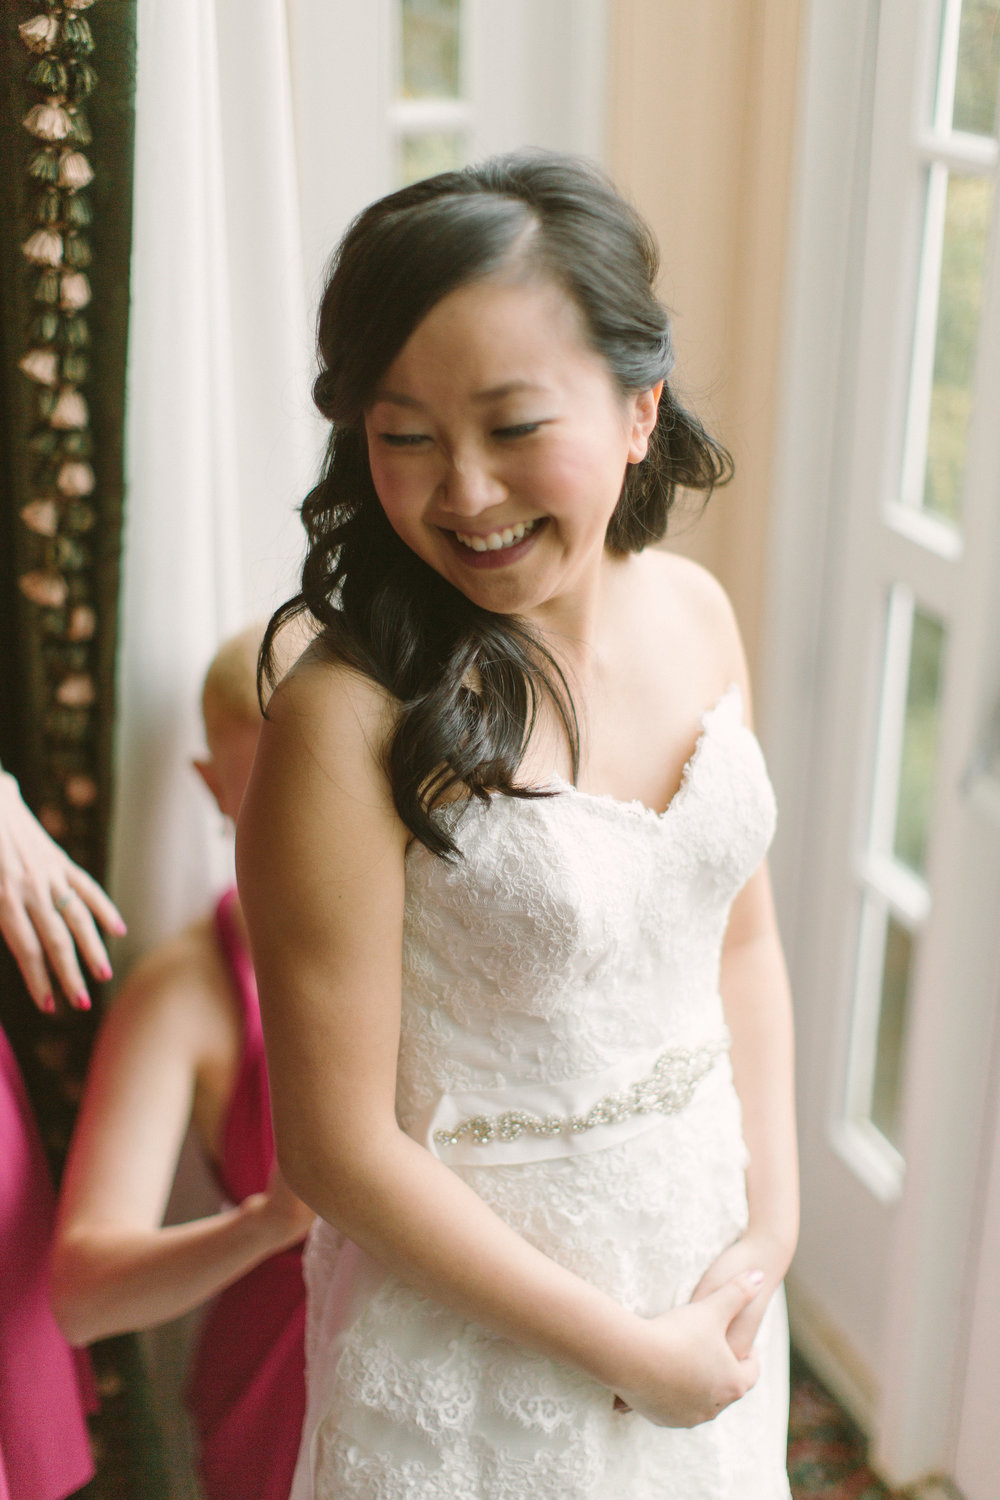 View More: http://laurenrosenauphoto.pass.us/miaandalex